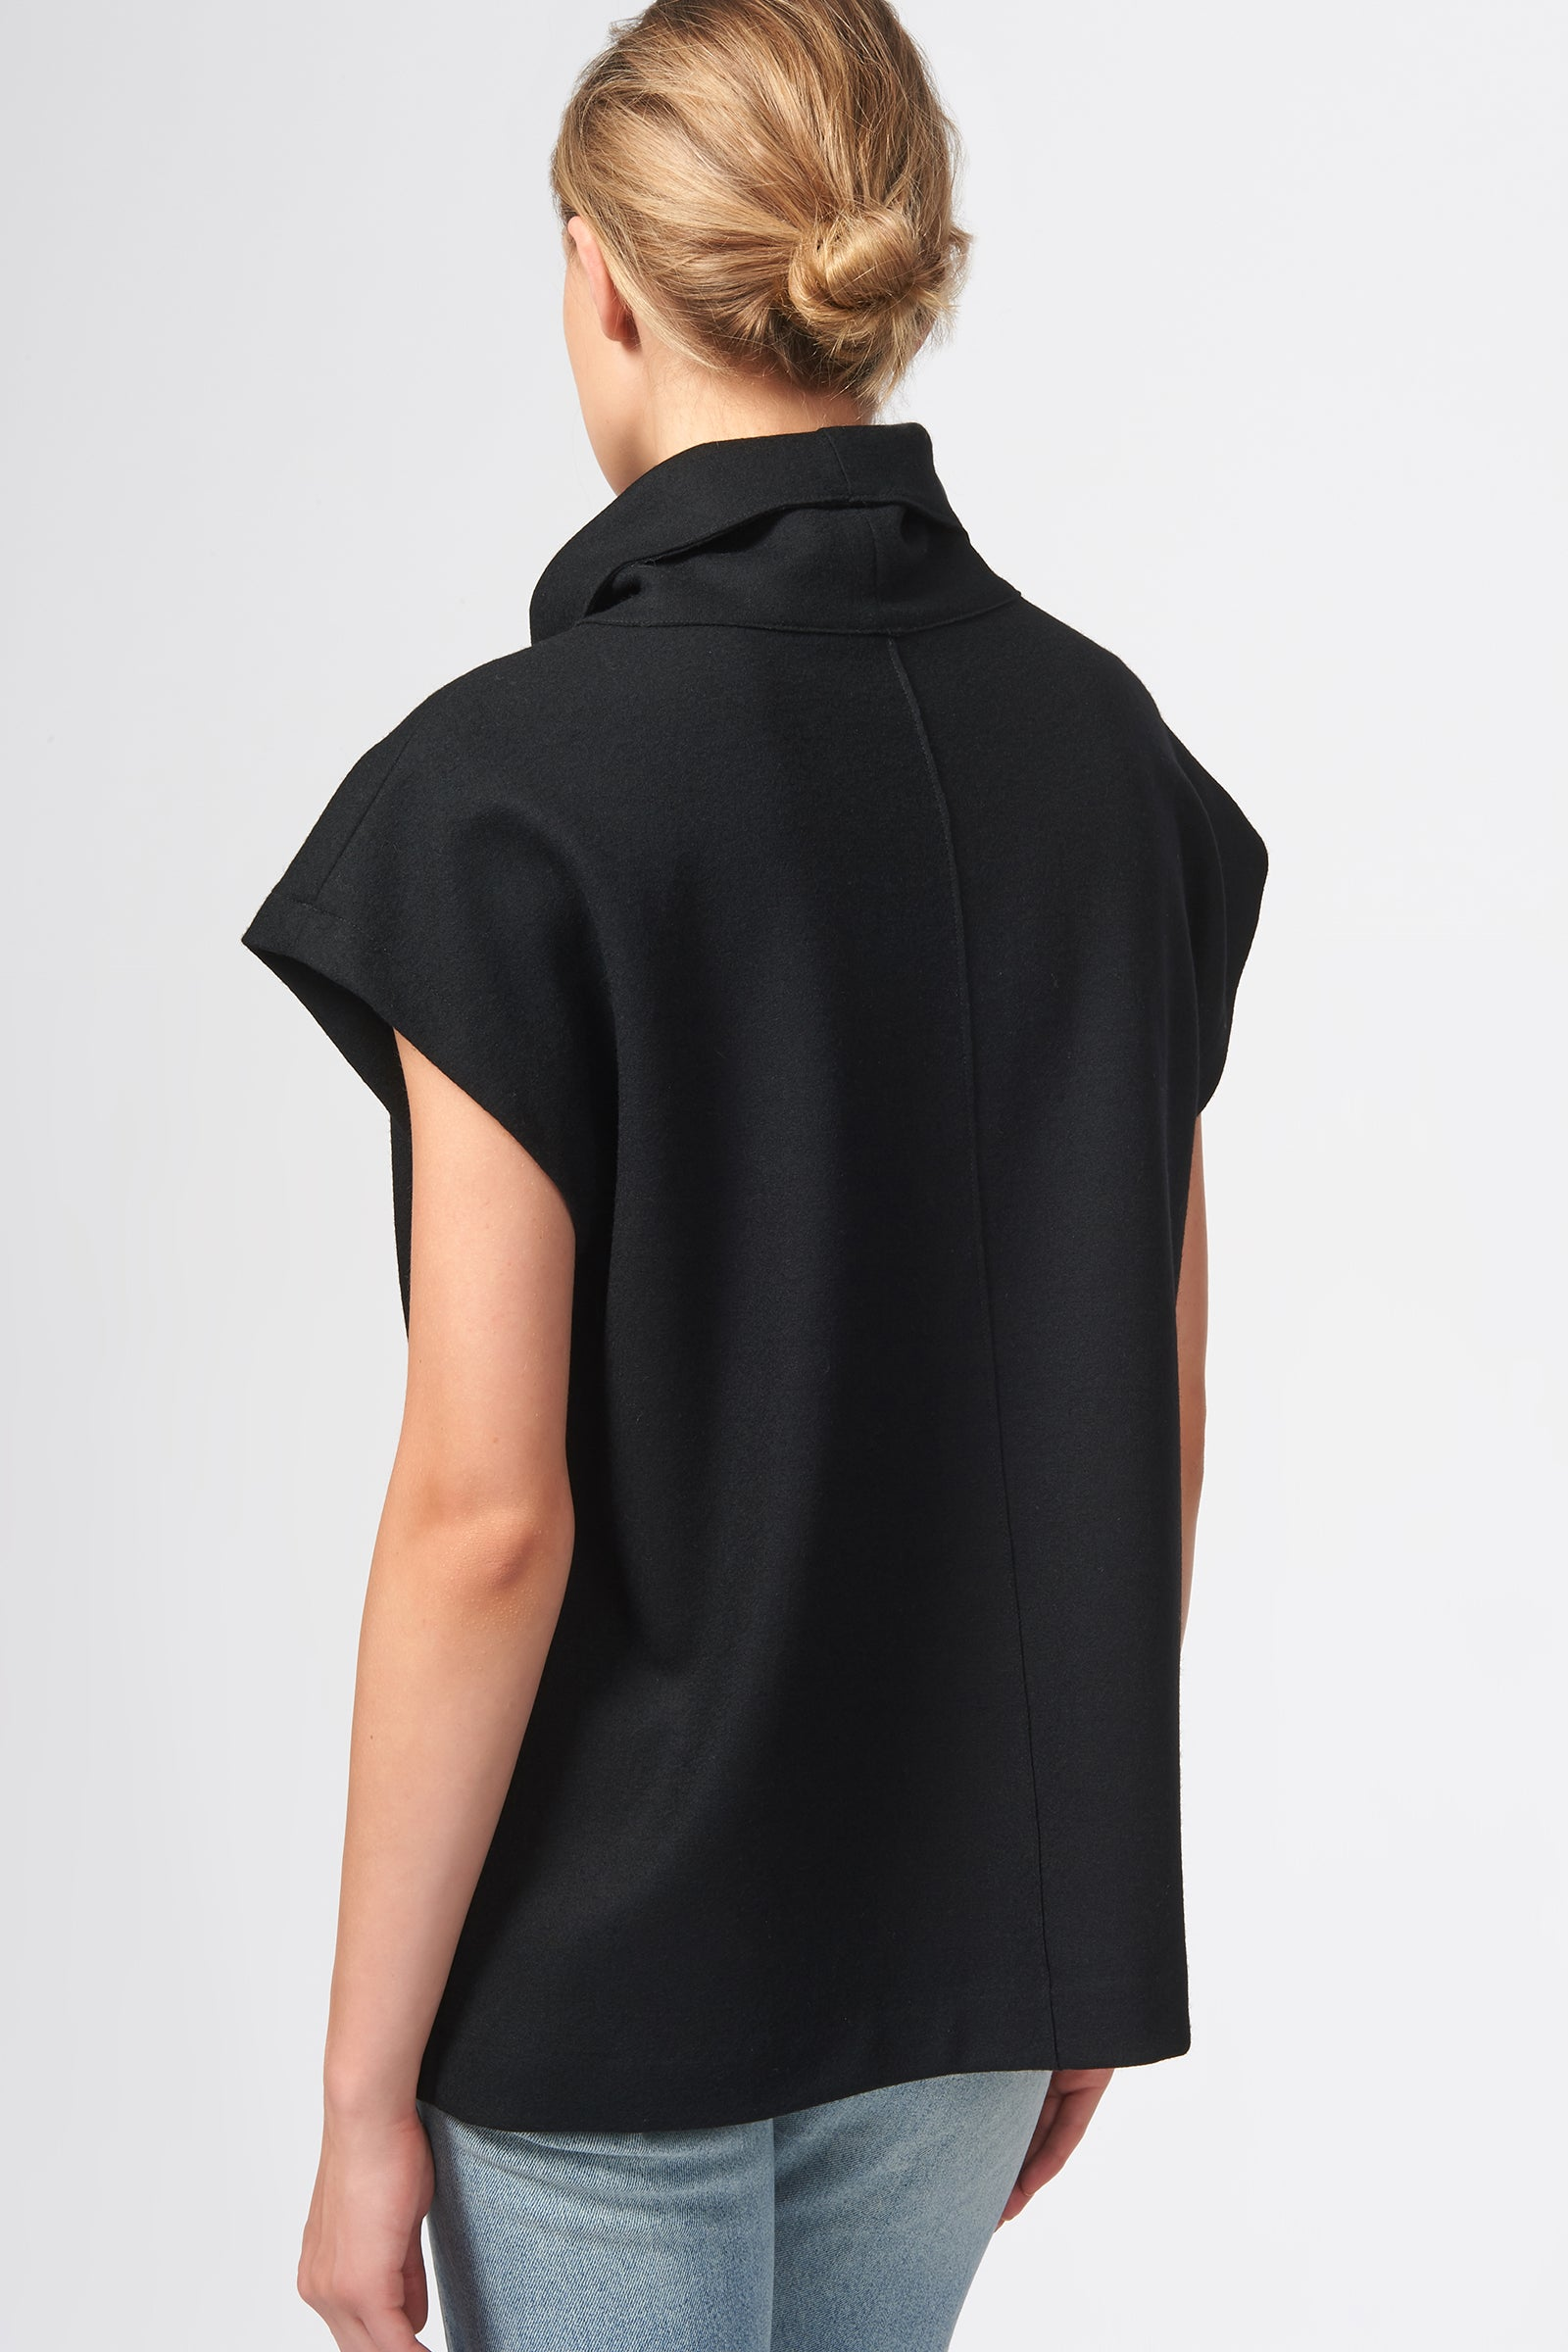 Kal Rieman Seamed Cap Sleeve Turtleneck in Black on Model Front View